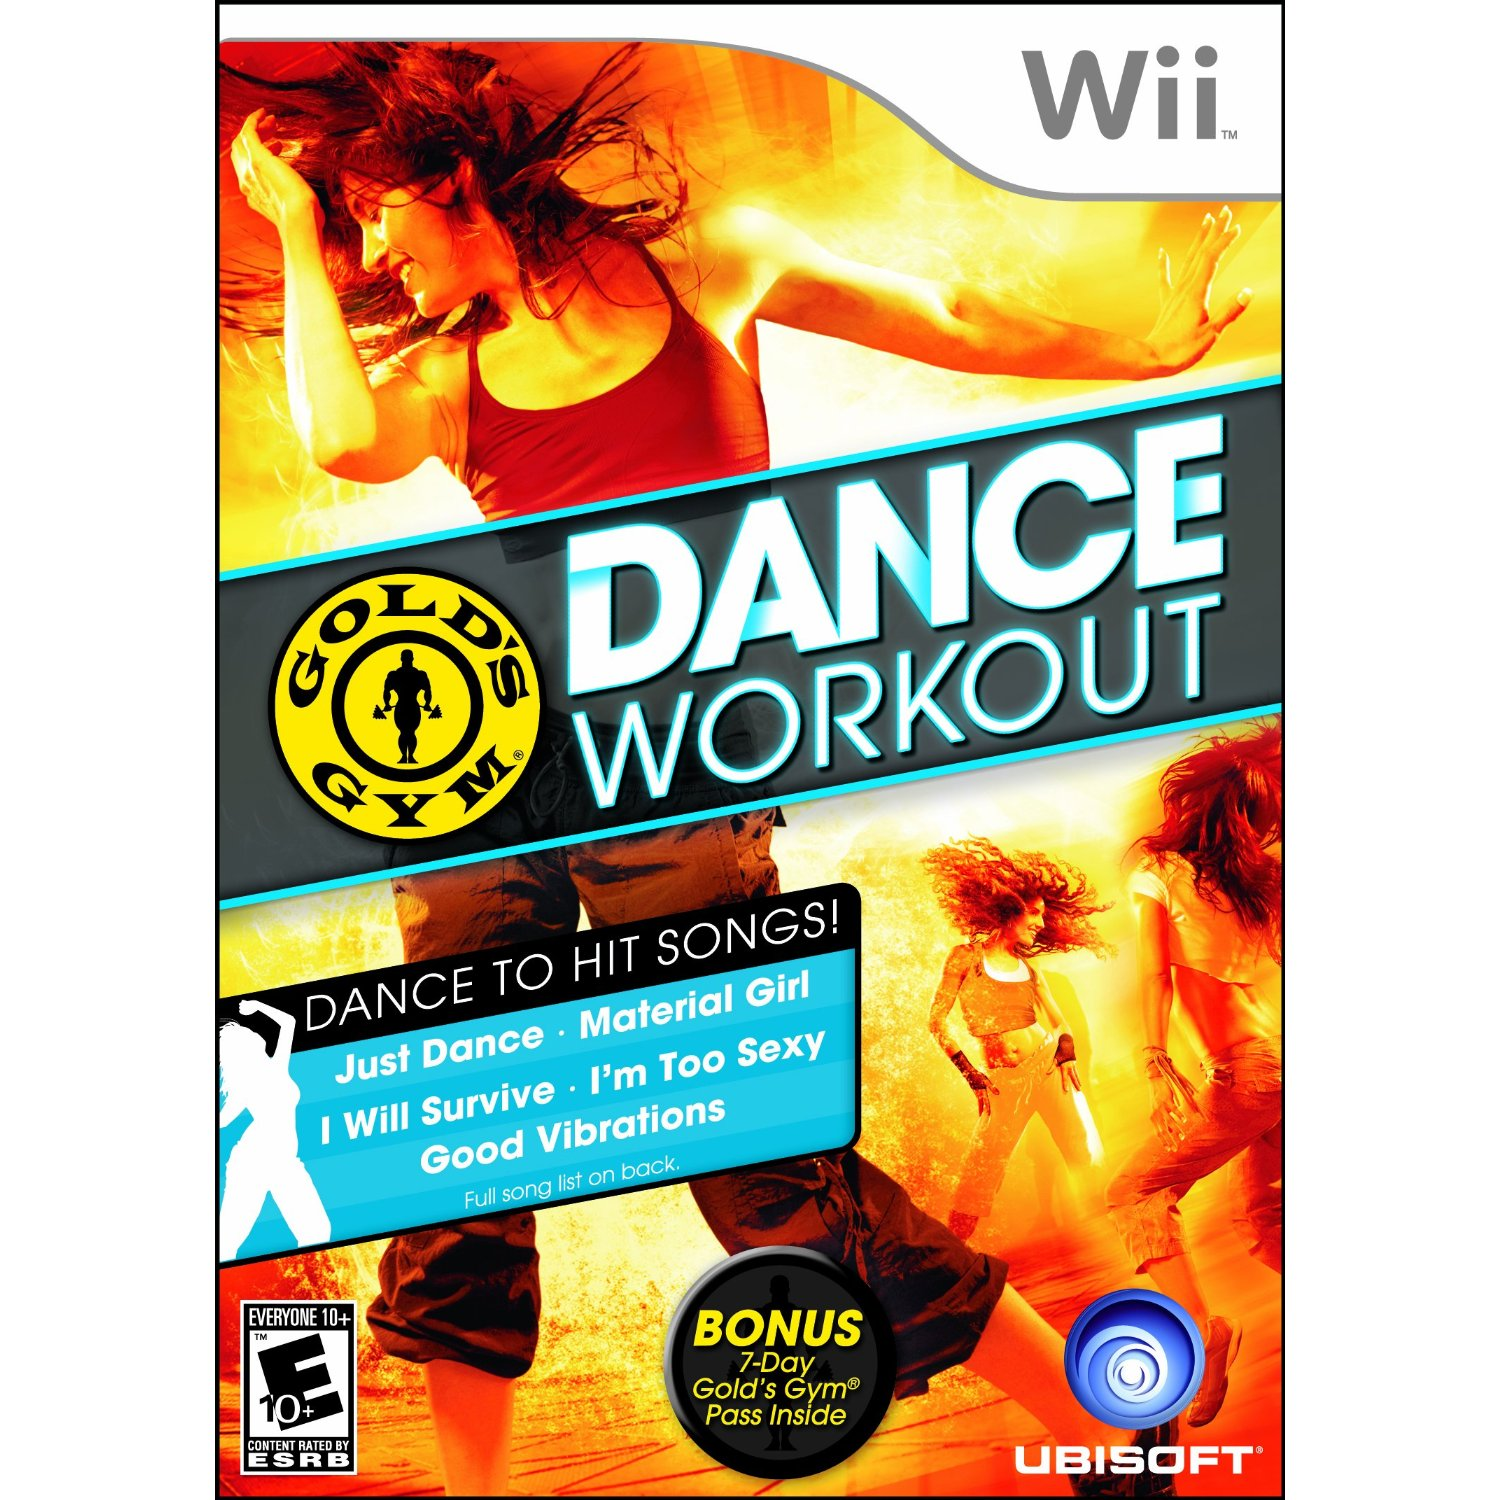 Dance workout videos online 3gp